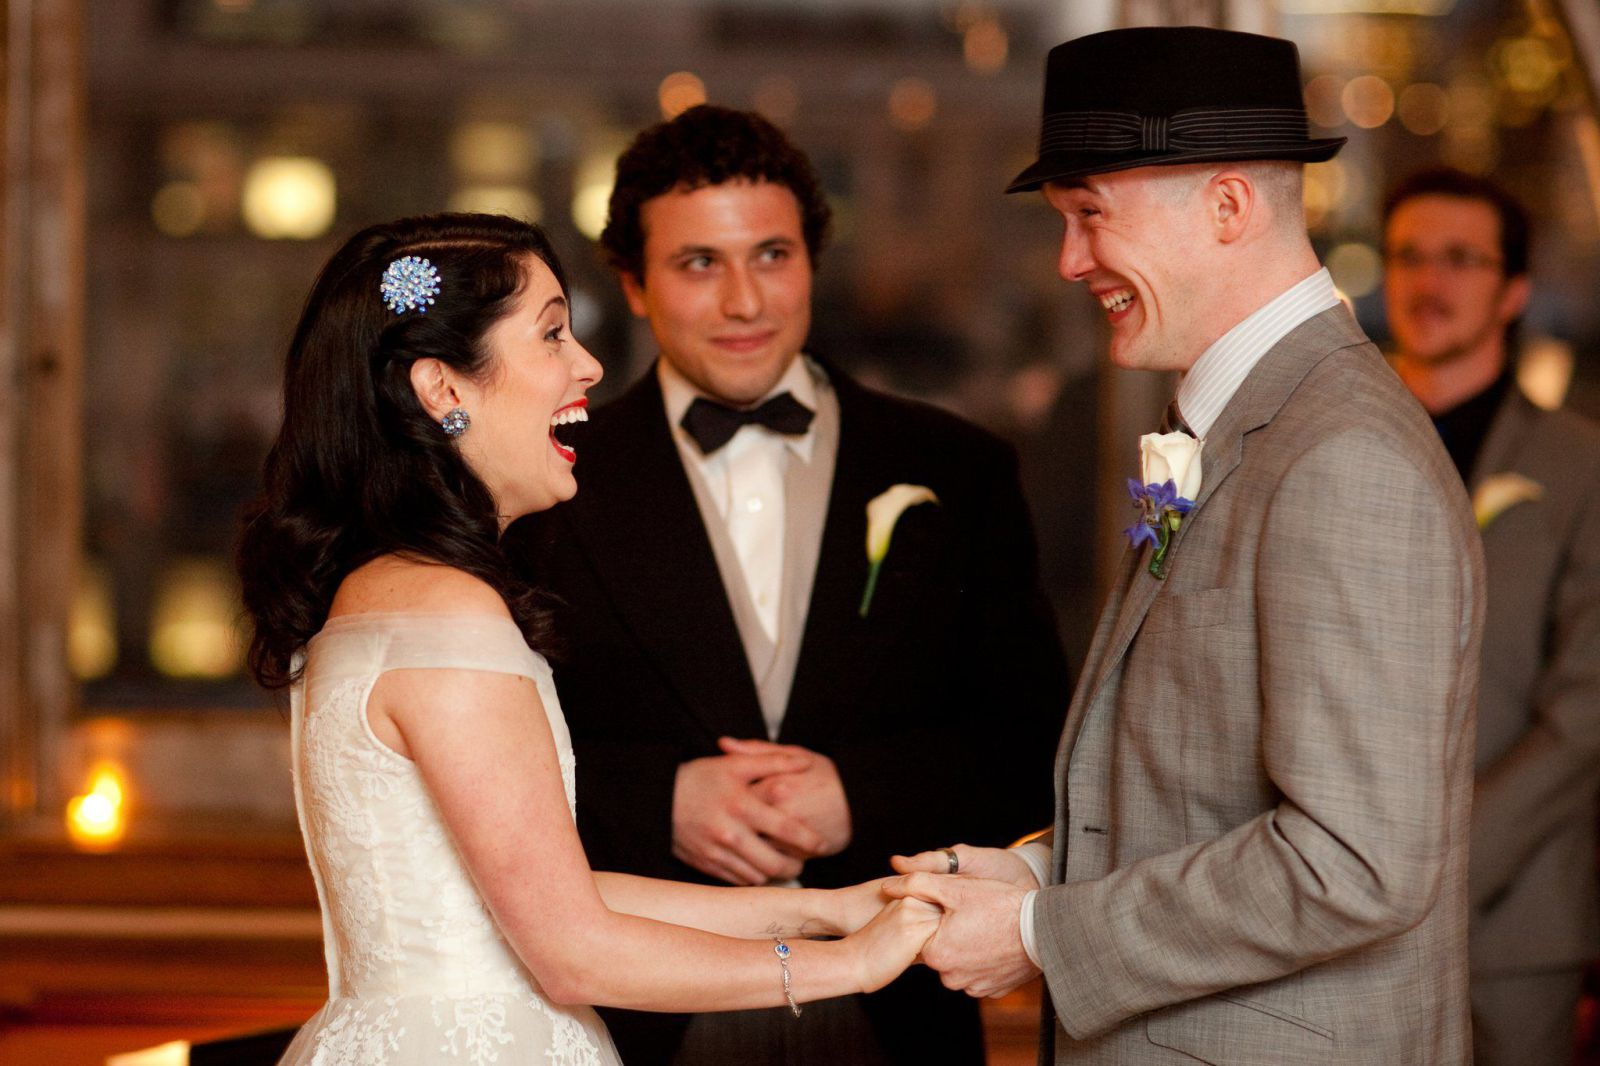 wedding ceremony, photo credit douglas benedict photography